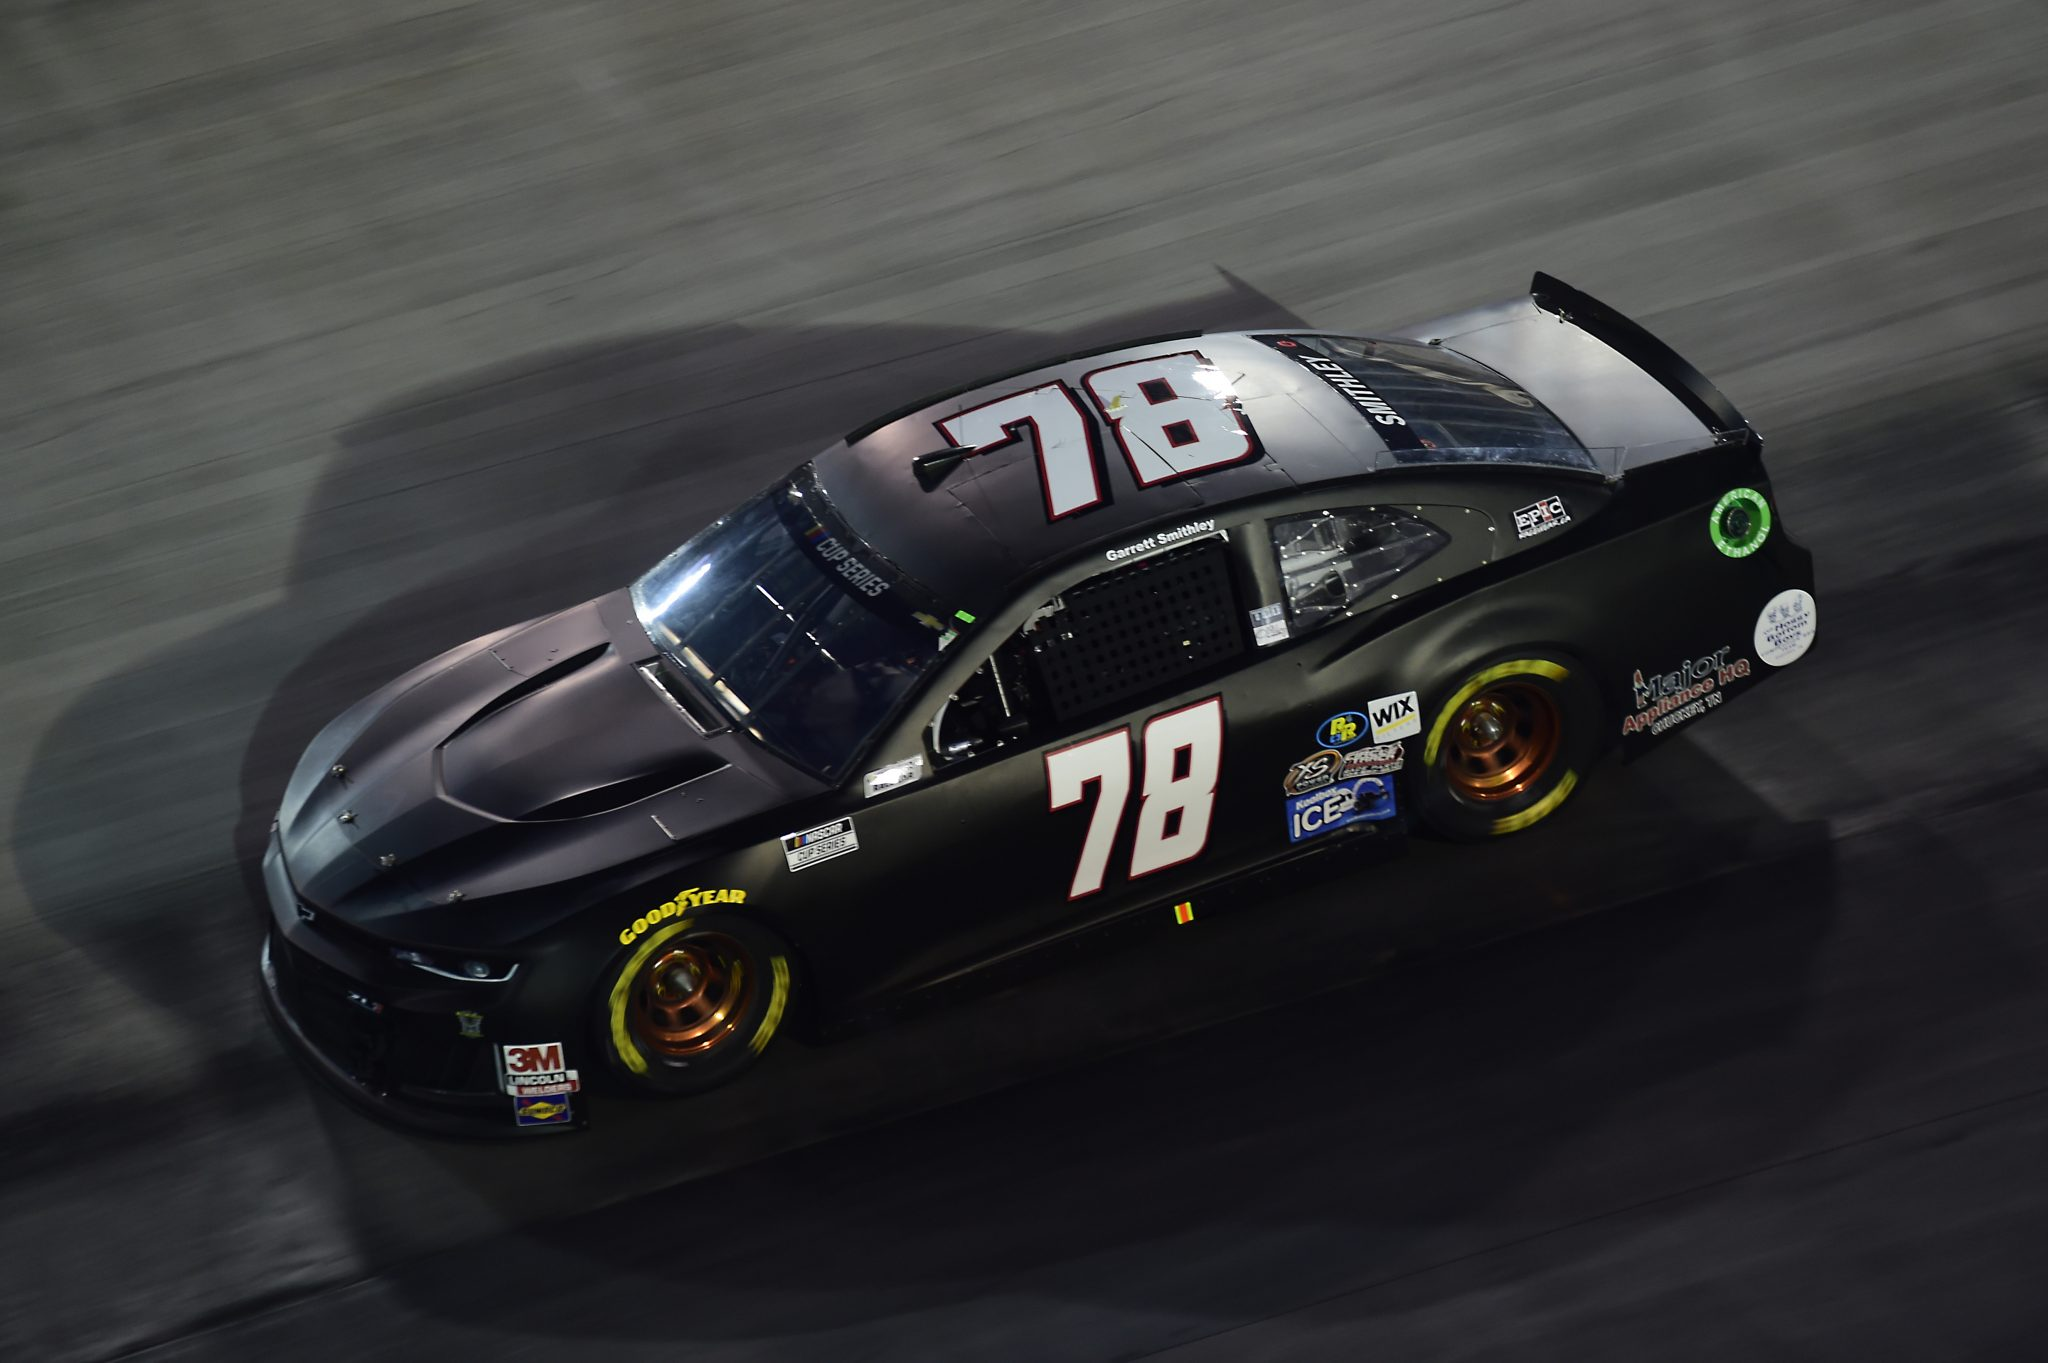 BRISTOL, TENNESSEE - SEPTEMBER 19: Garrett Smithley, driver of the #78 Chevrolet, drives during the NASCAR Cup Series Bass Pro Shops Night Race at Bristol Motor Speedway on September 19, 2020 in Bristol, Tennessee. (Photo by Jared C. Tilton/Getty Images) | Getty Images